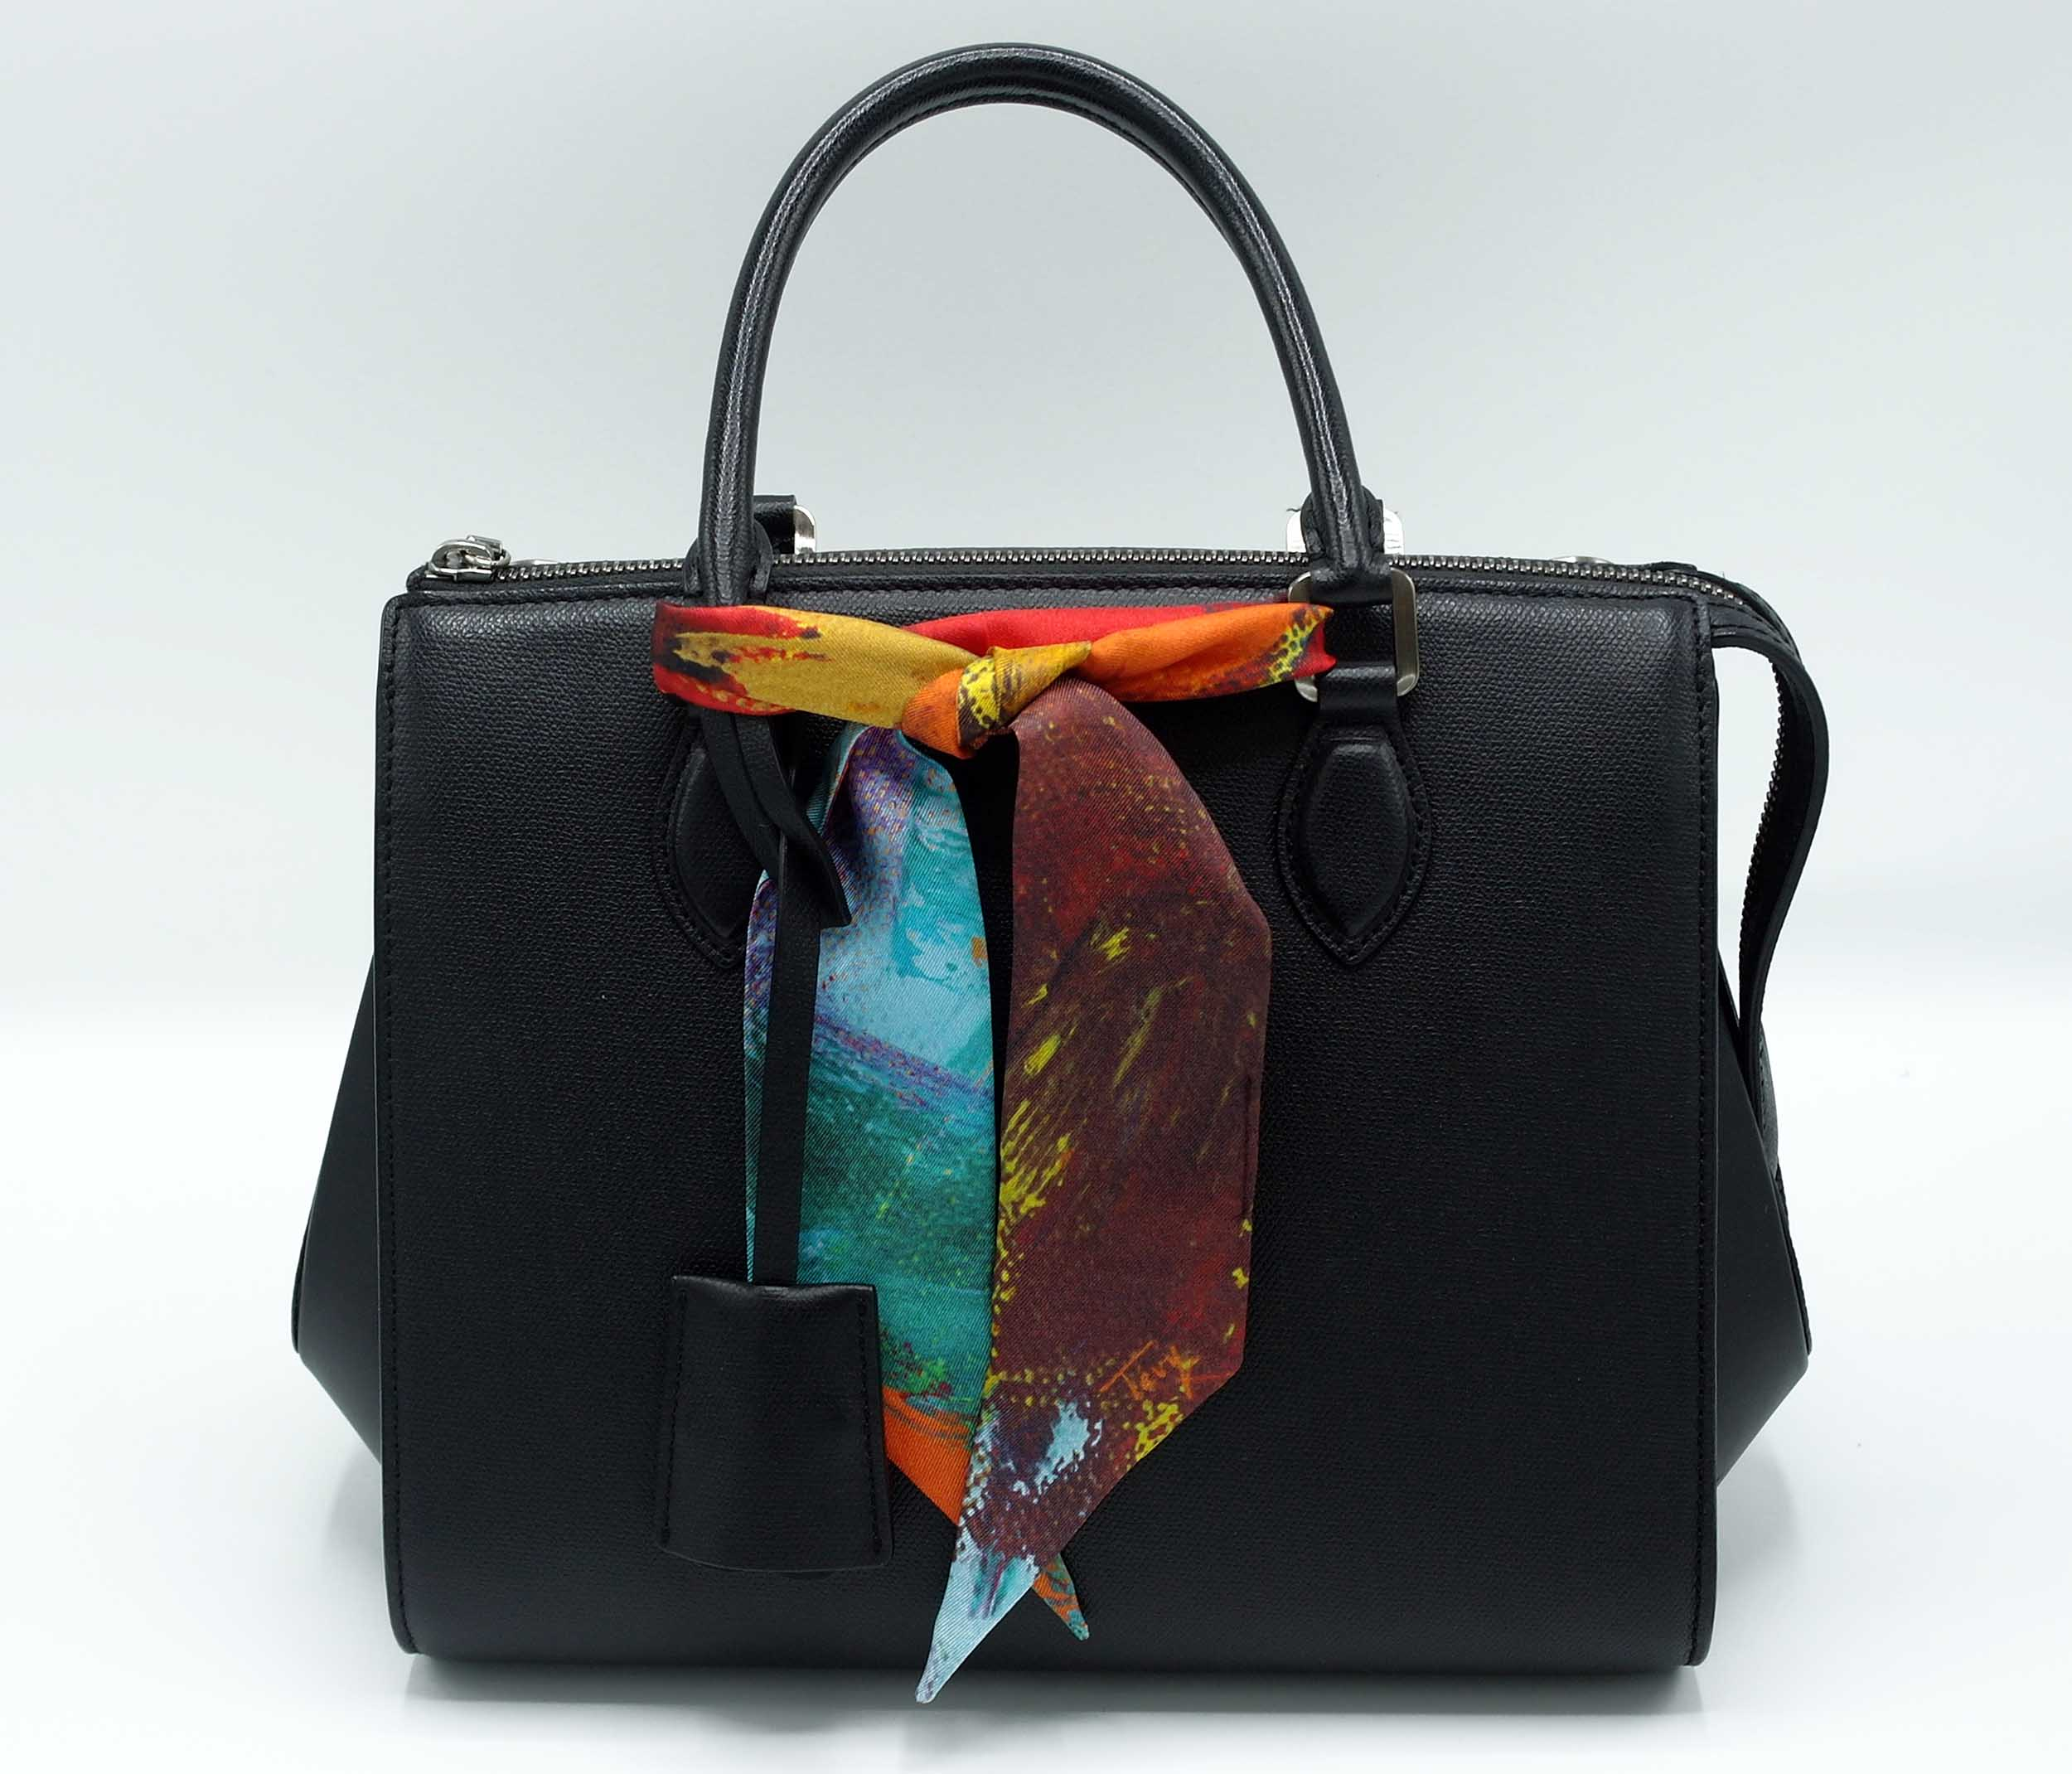 La vie aquatique twilly bag